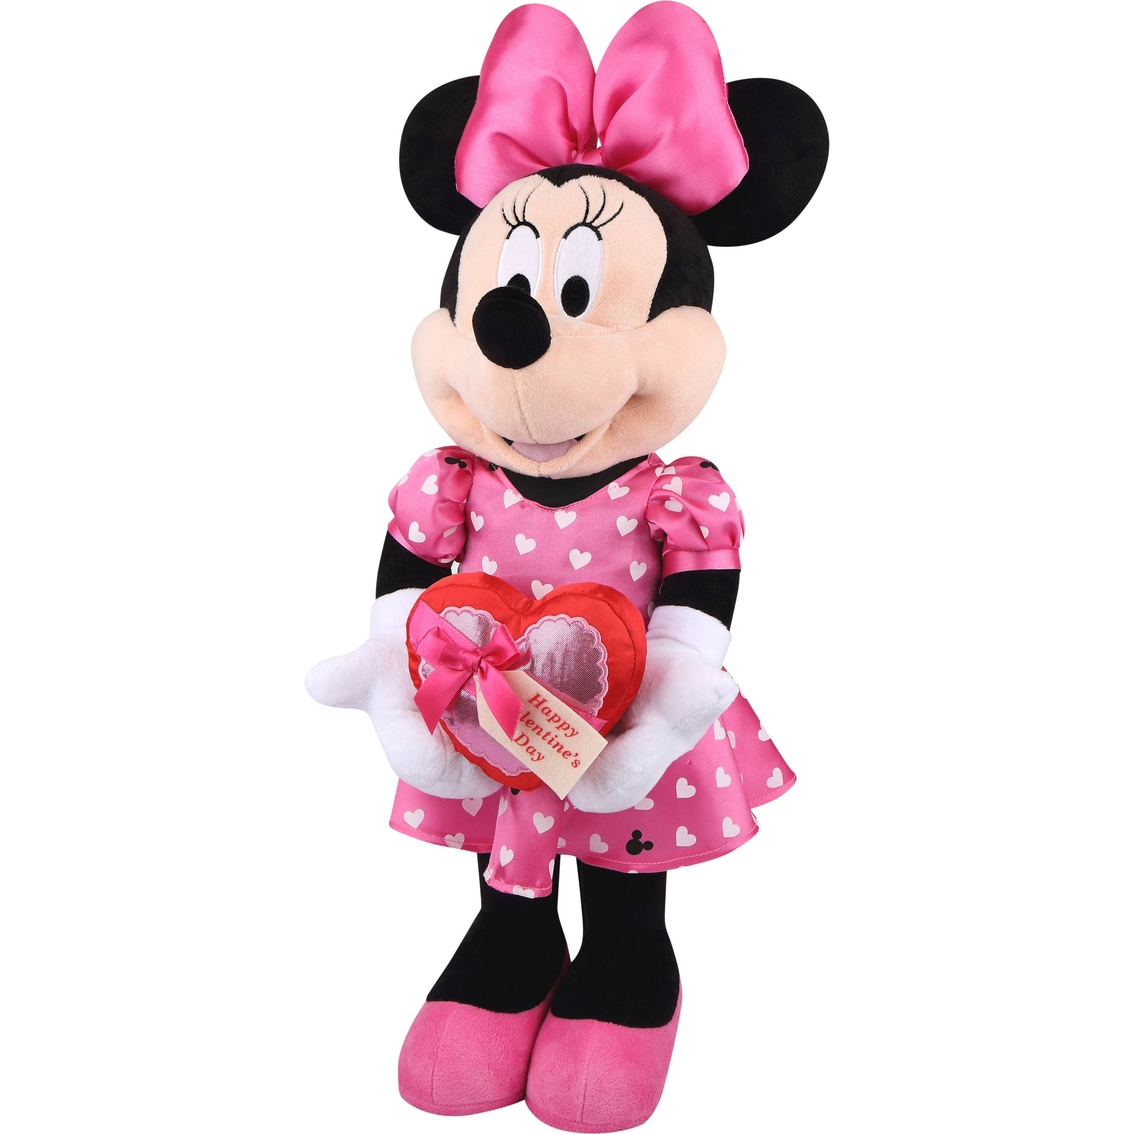 For Daughter/'s Gift Minnie Mouse Cartoon Costume Mascot Adult Size HIgh School